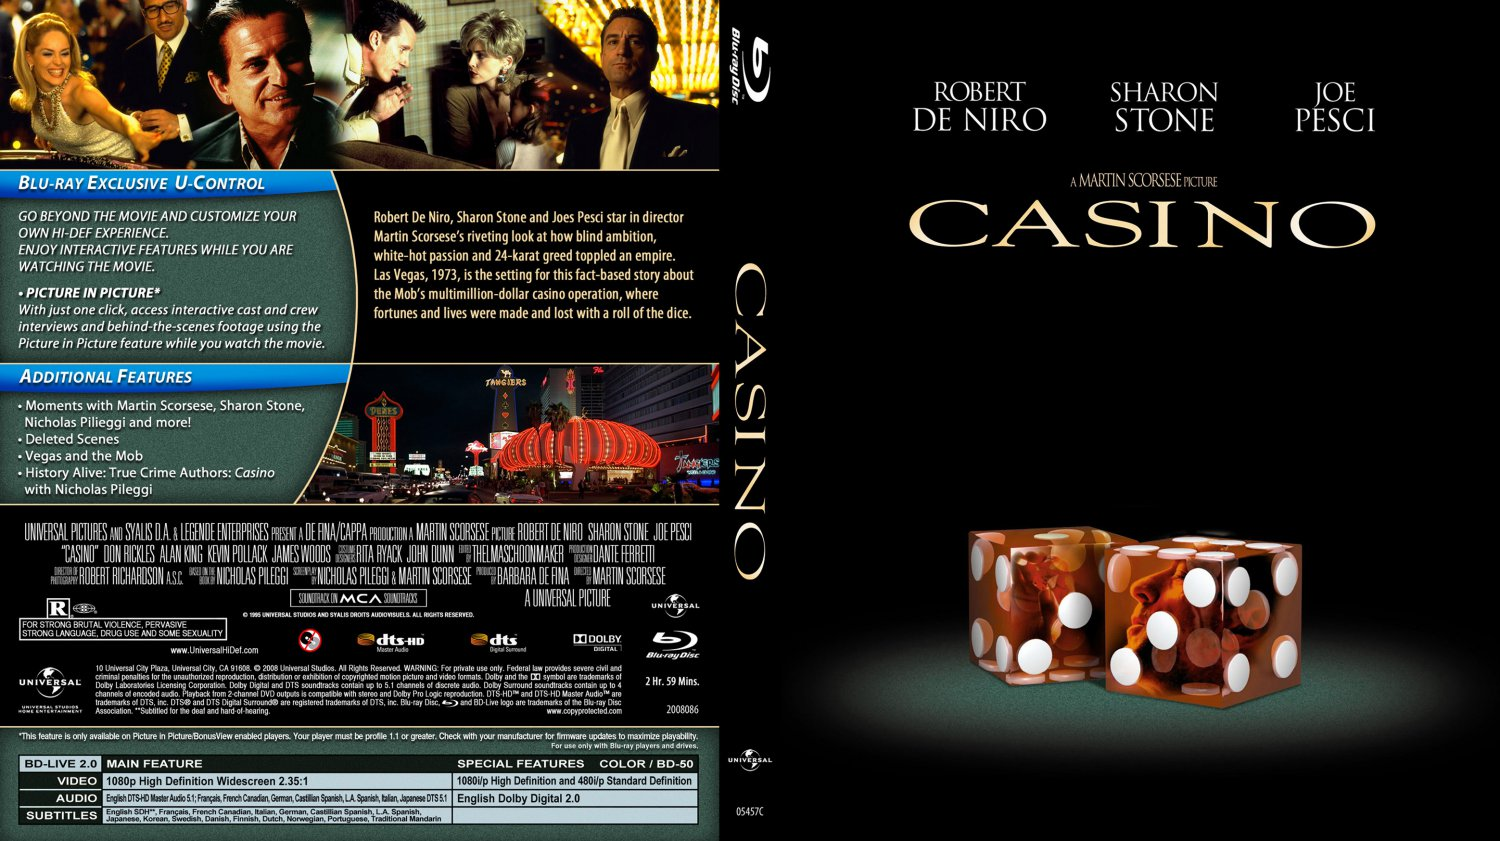 watch casino online free 1995 crazy slots